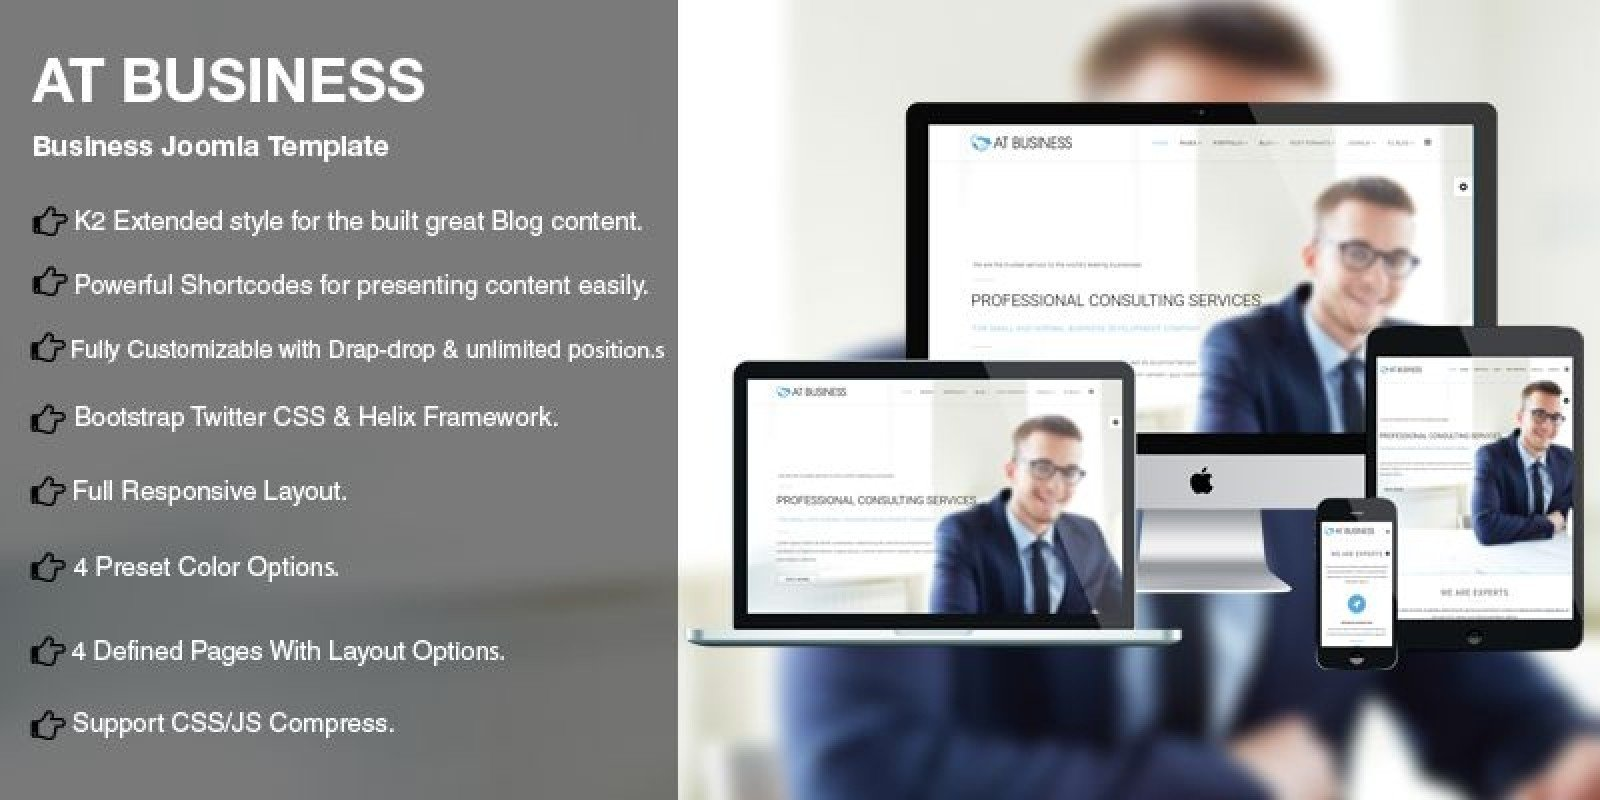 At business business joomla template joomla business templates at business business joomla template wajeb Images